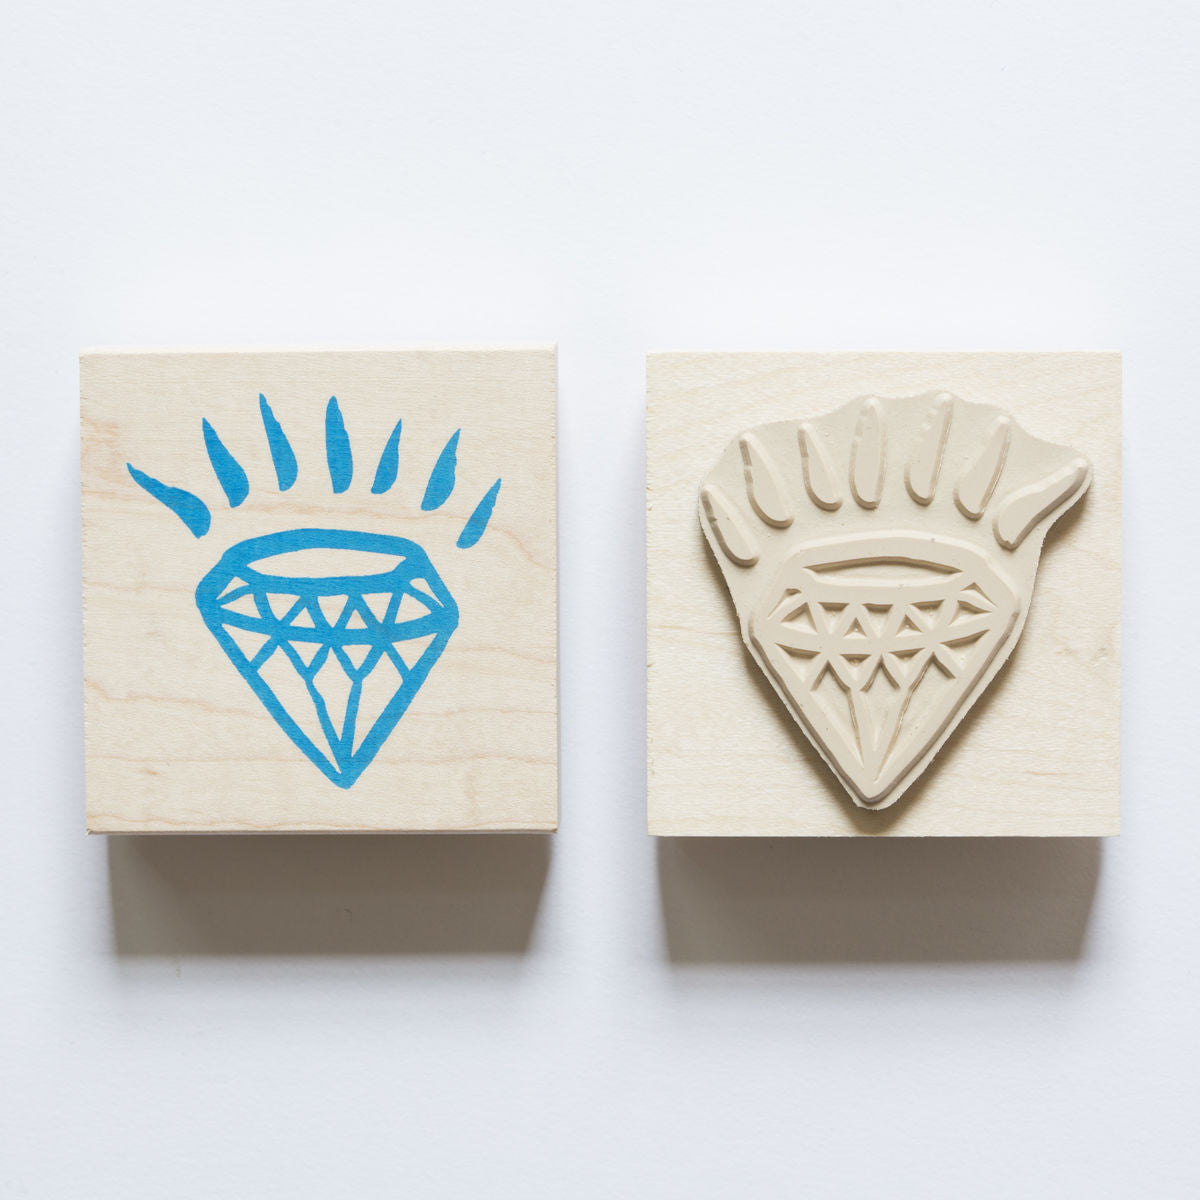 Wood mounted rubber stamp of a glowing diamond.